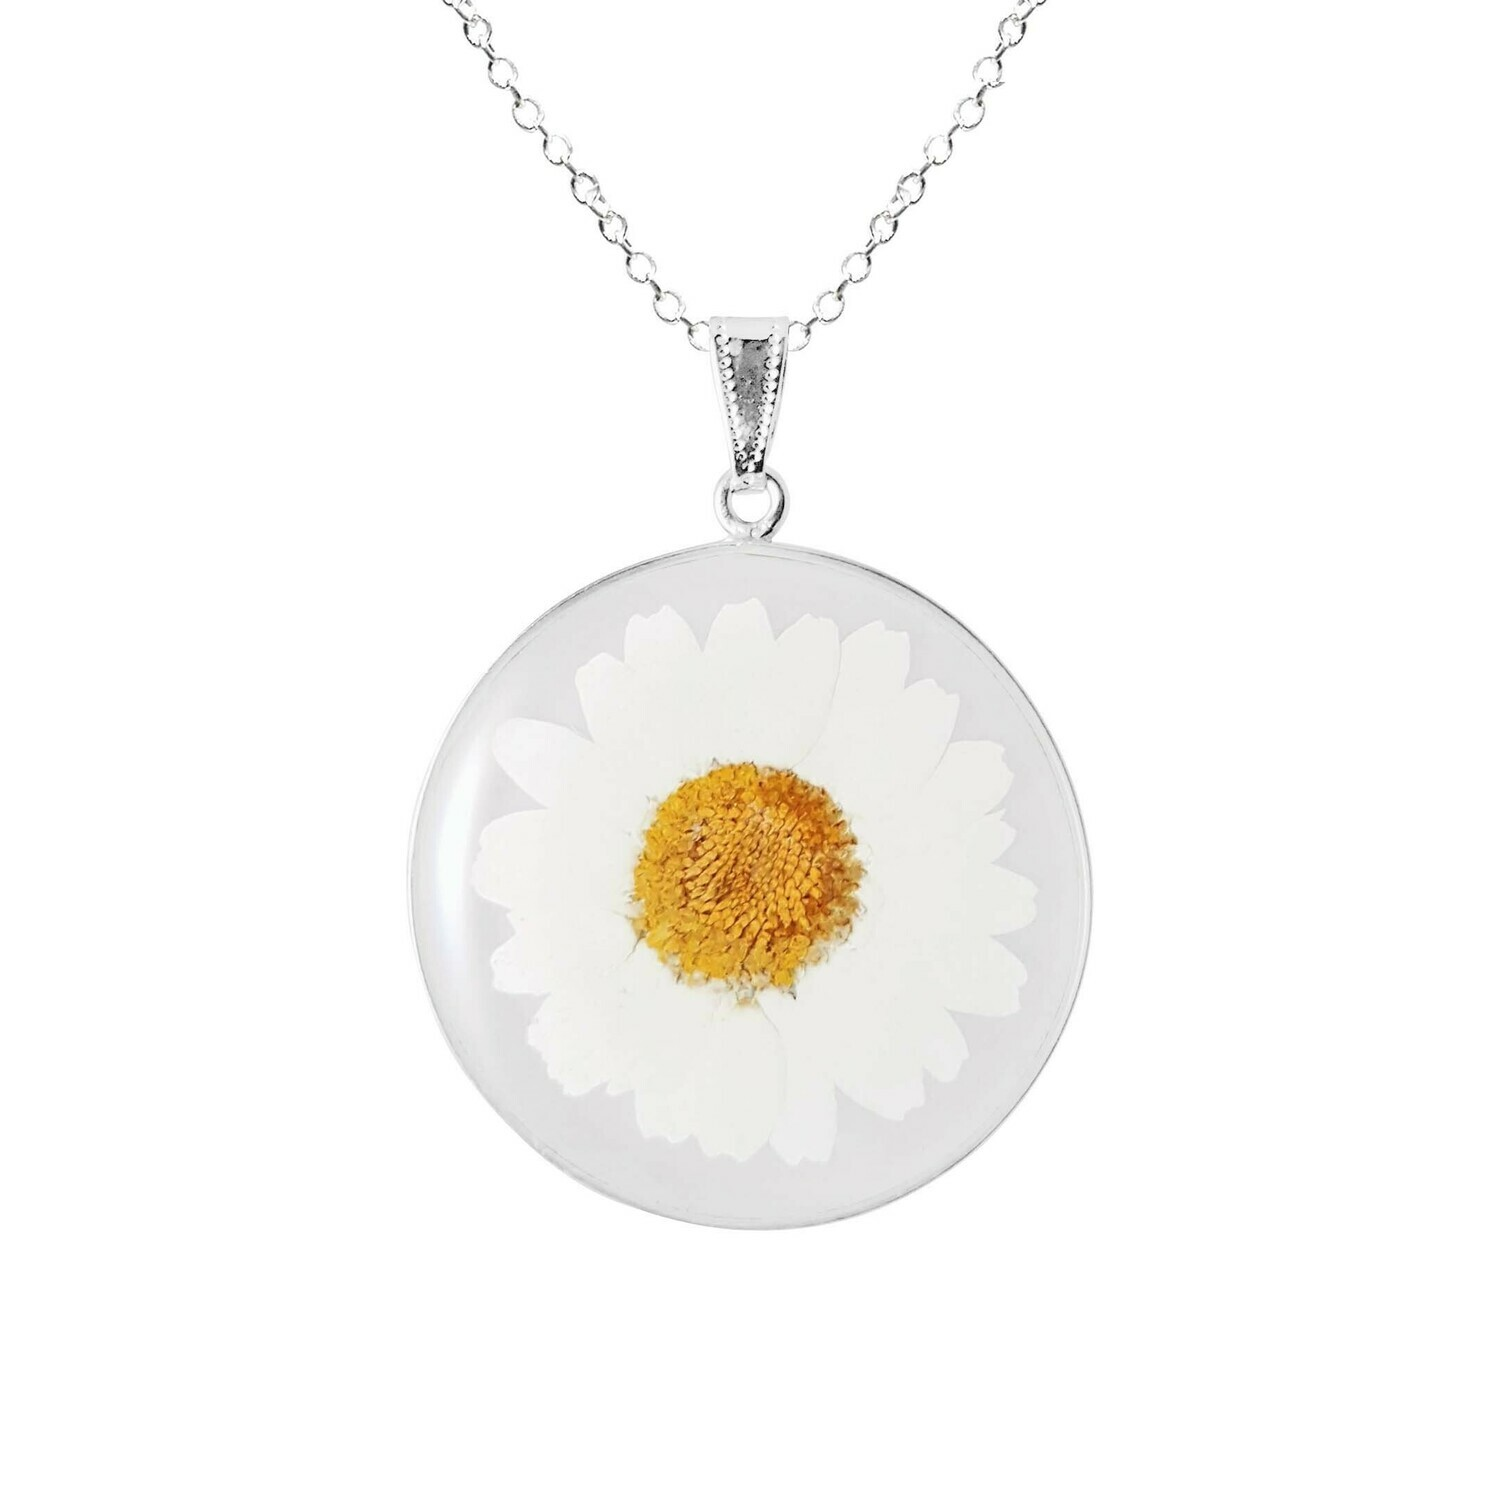 Daisy Necklace, X-Large Circle Pendant, Transparent